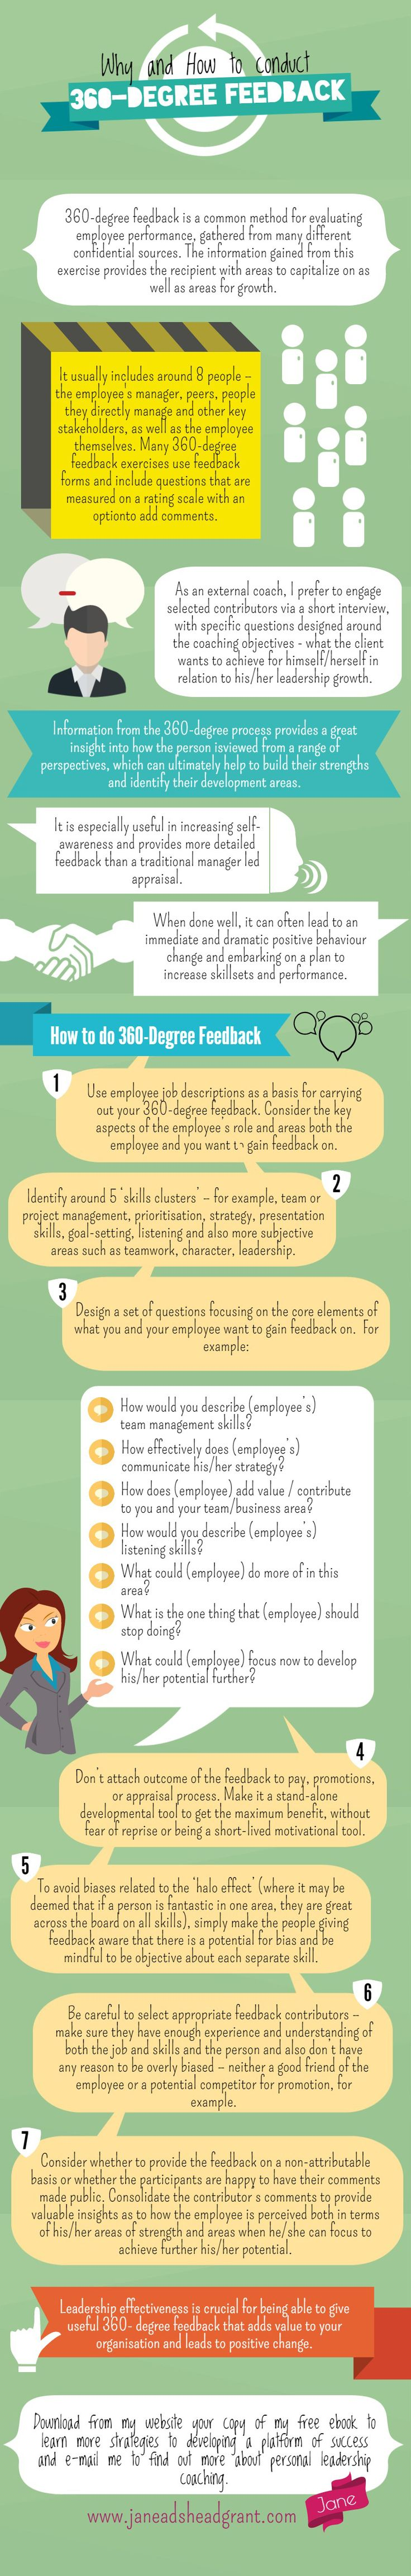 360 Degree Feedback Infographic